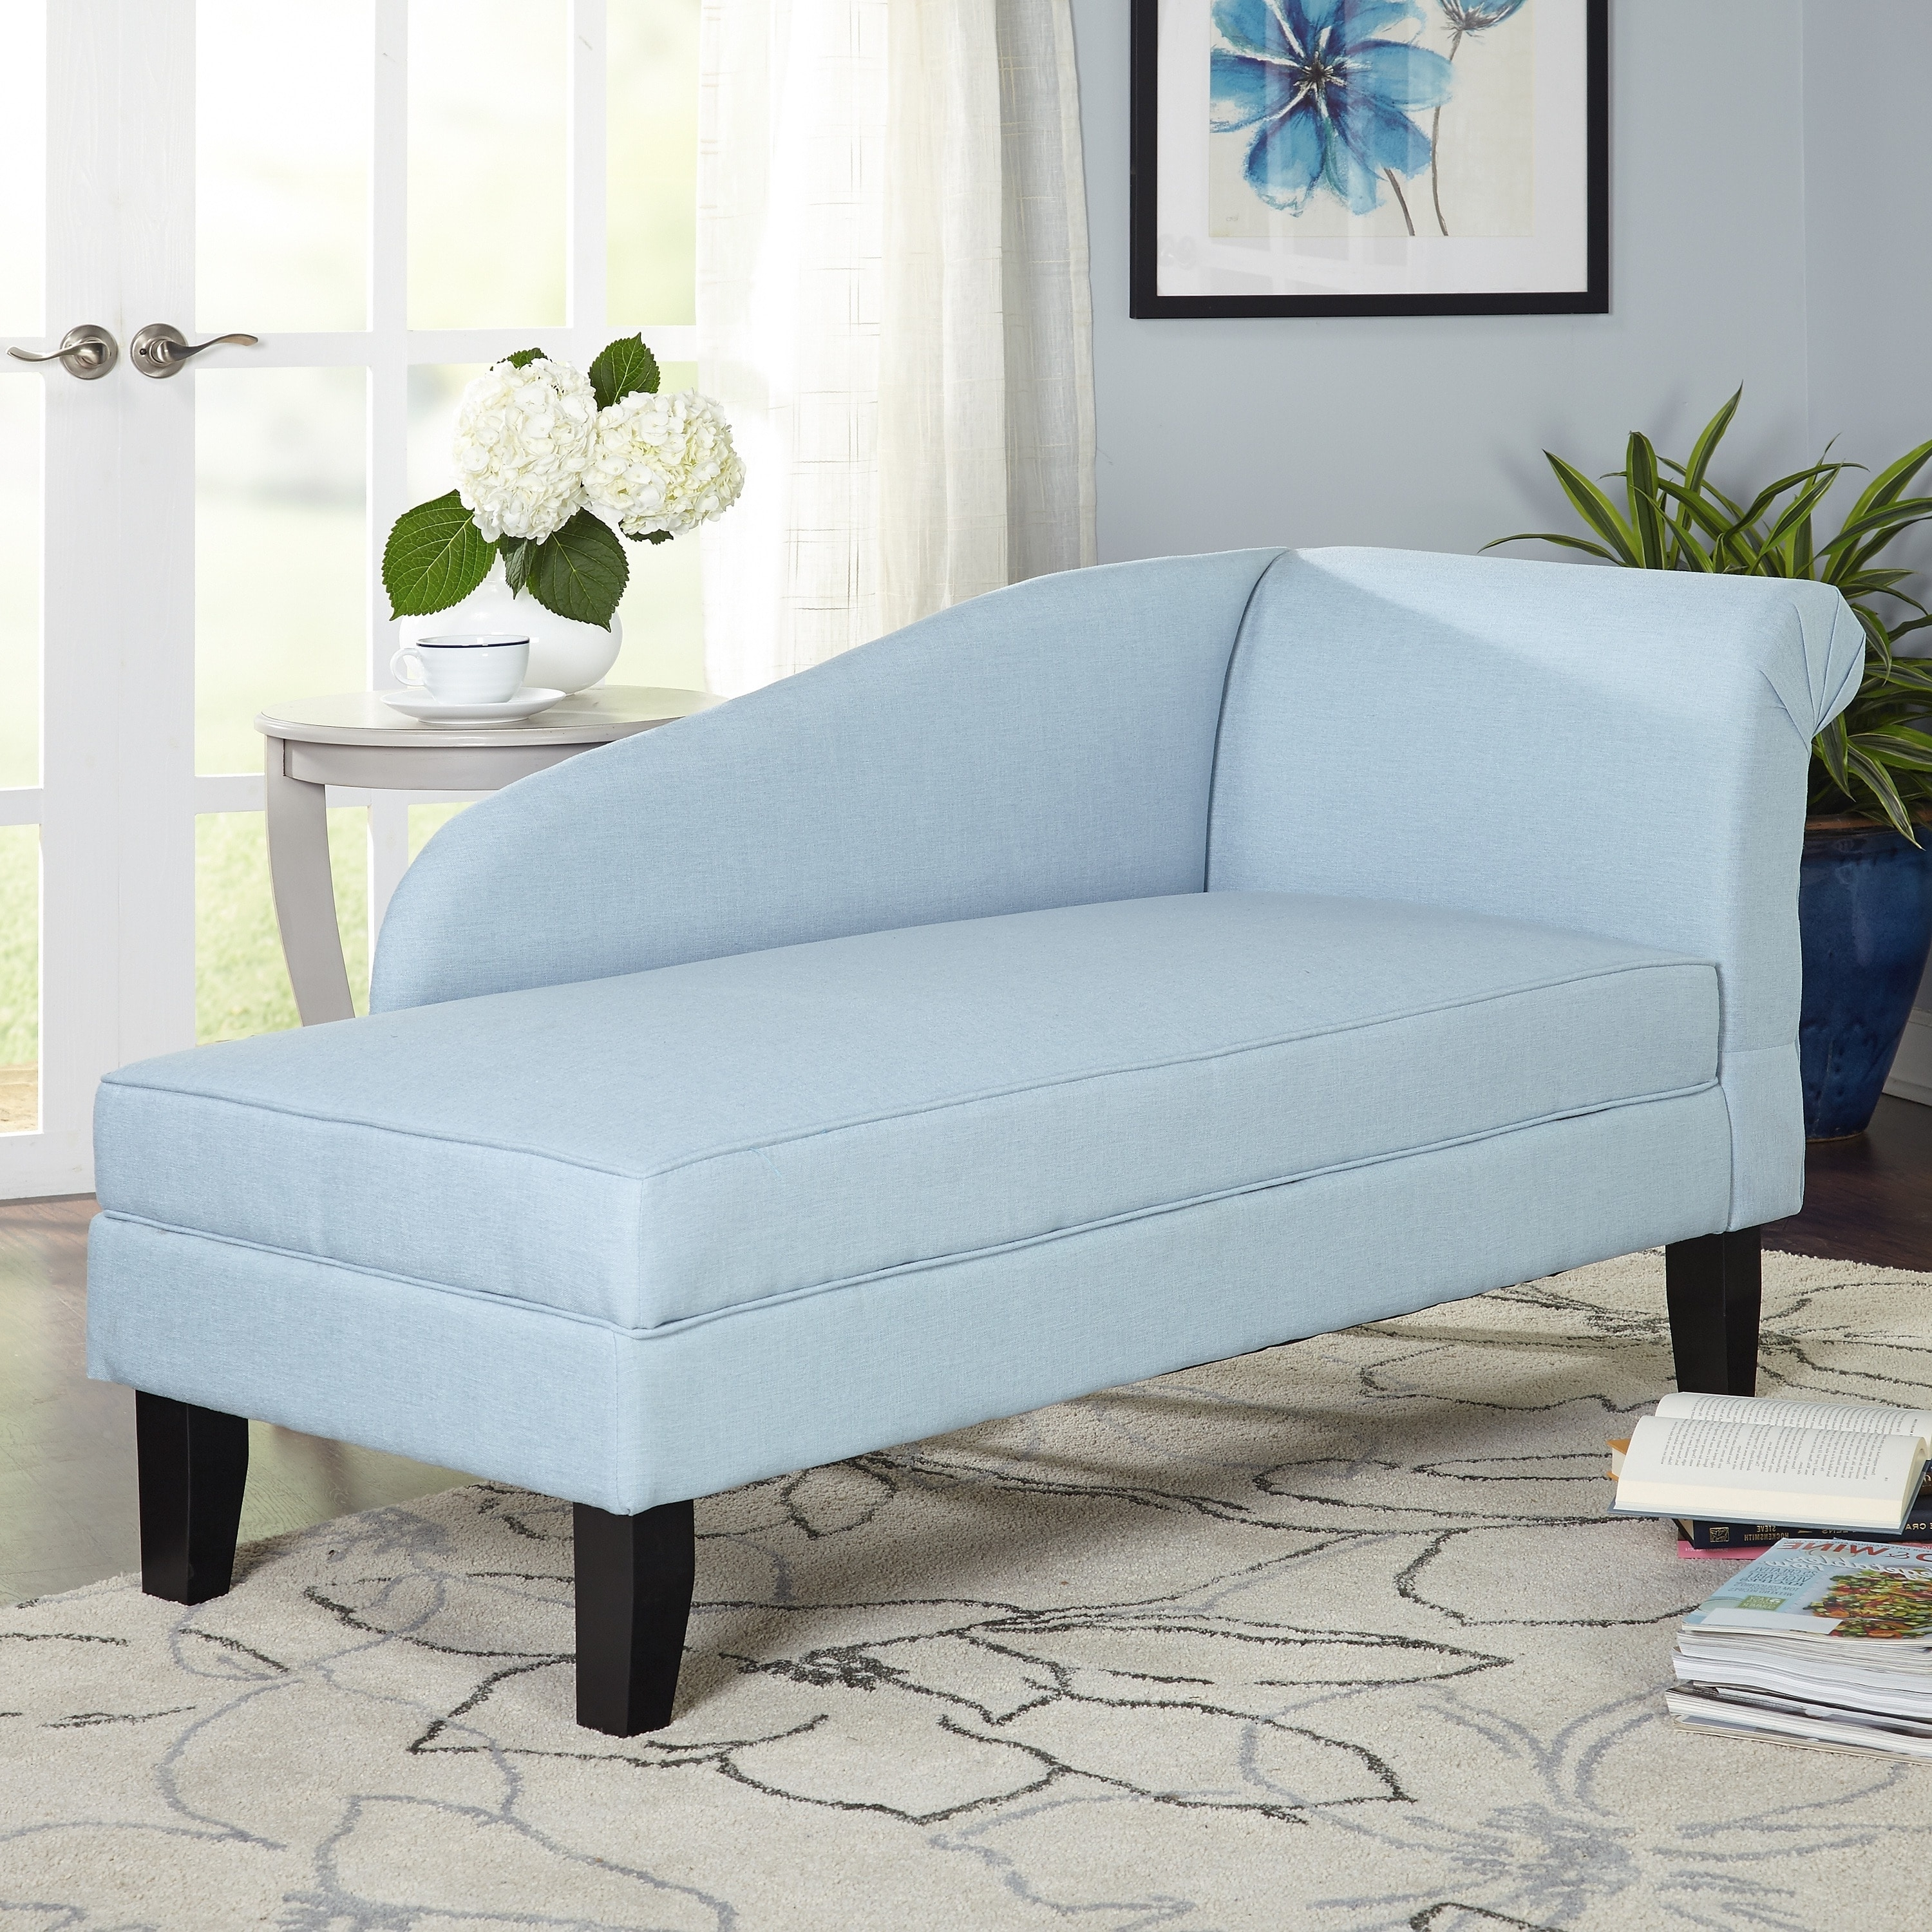 Storage Chaise Lounges Within Preferred Simple Living Chaise Lounge With Storage Compartment – Free (View 13 of 15)